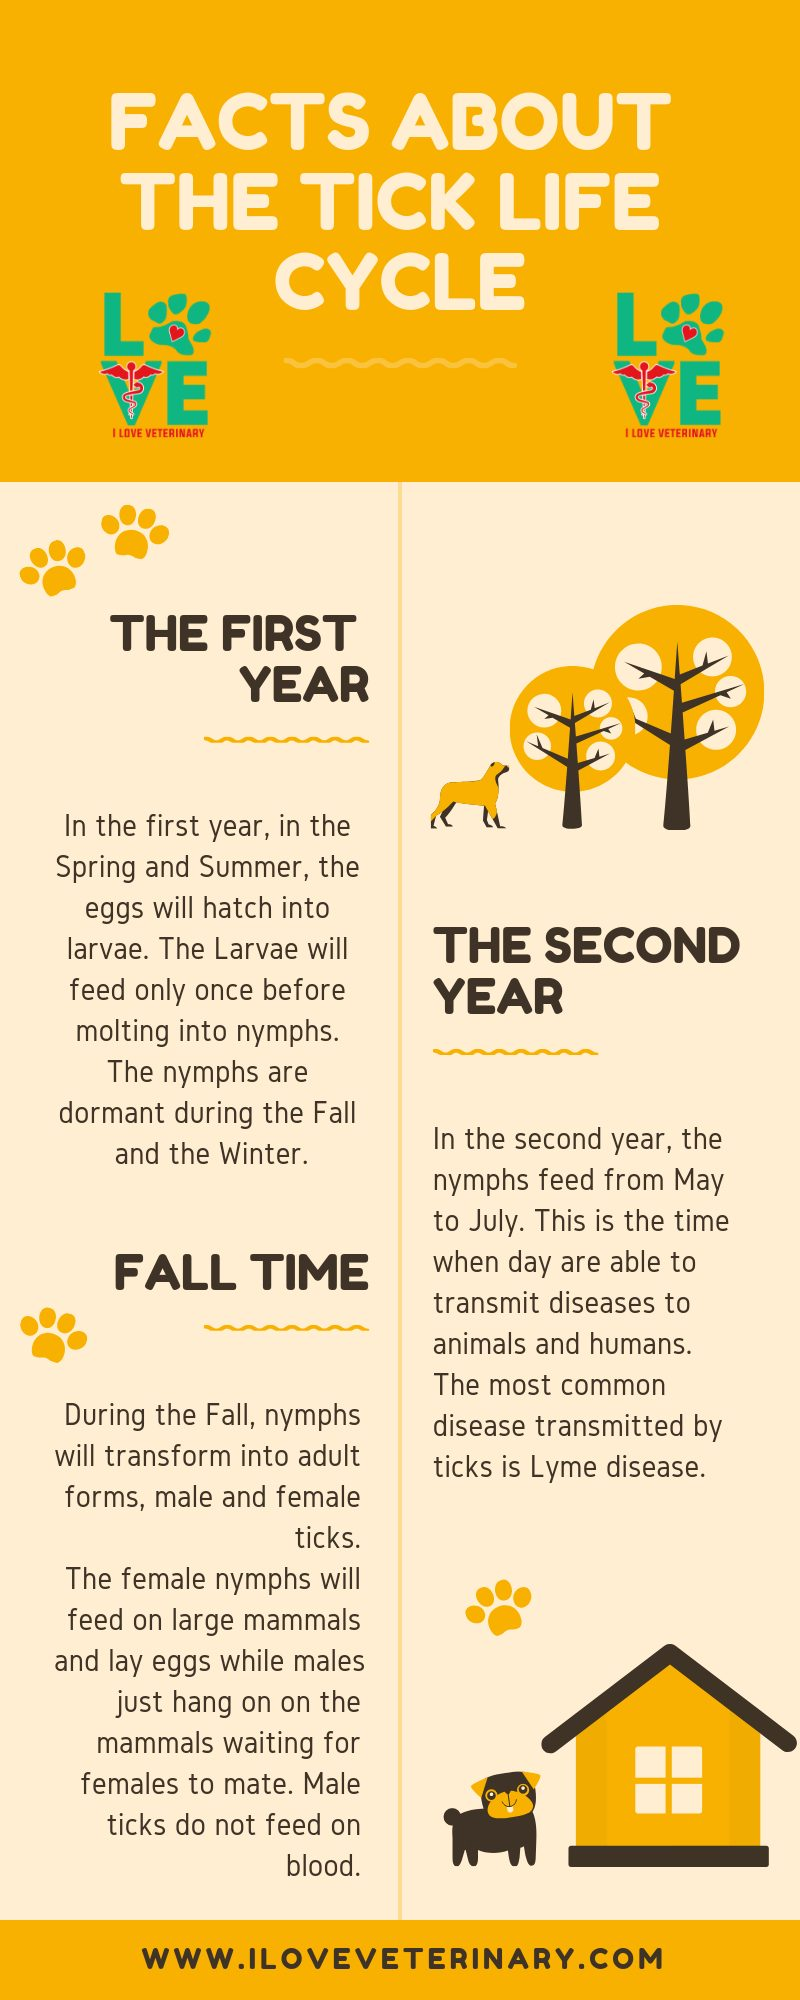 Facts about the tick life cycle